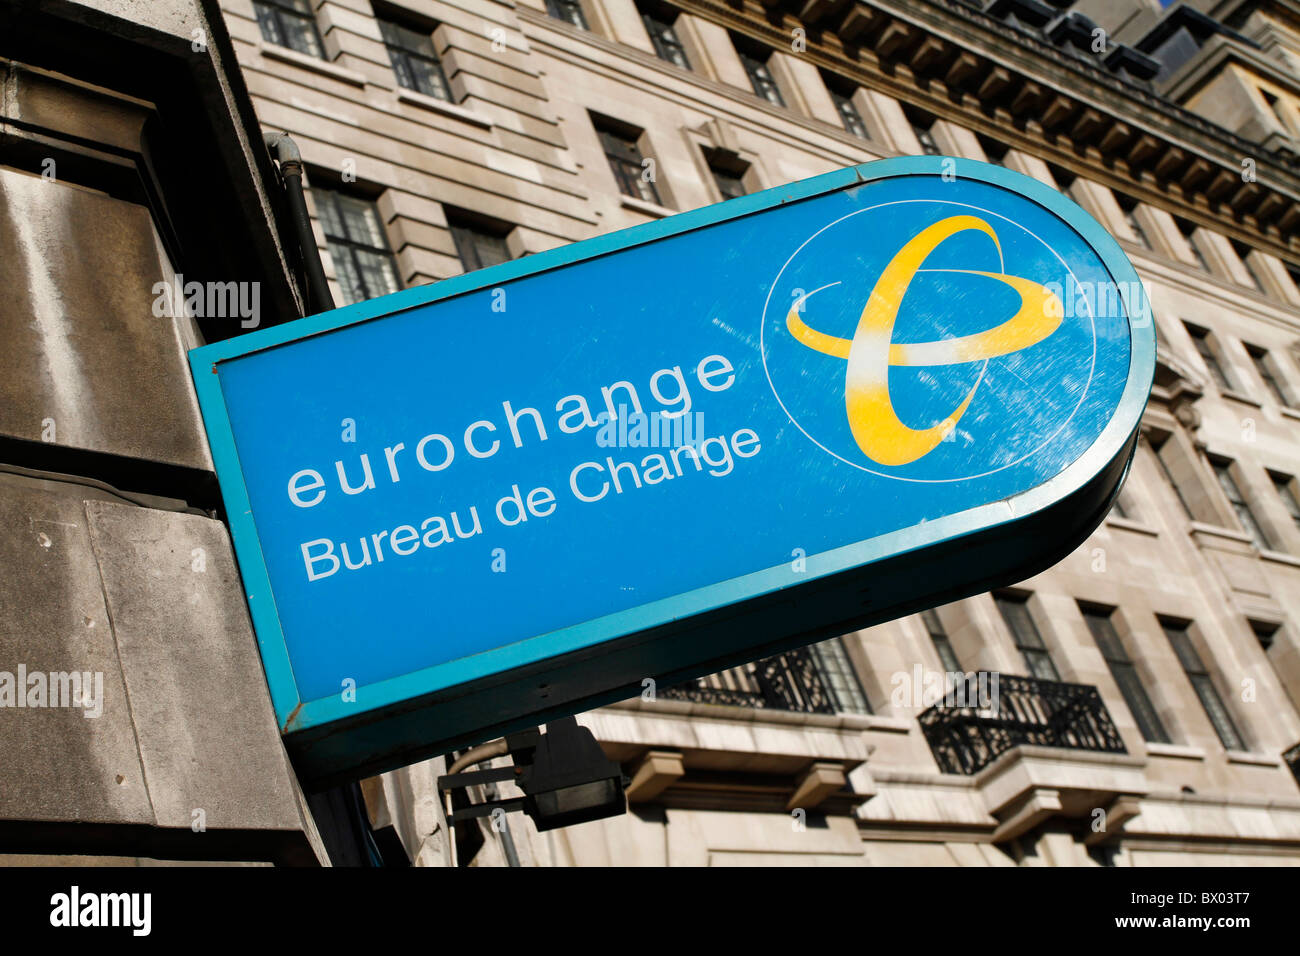 Eurochange bureau de change sign, London, England - Stock Image